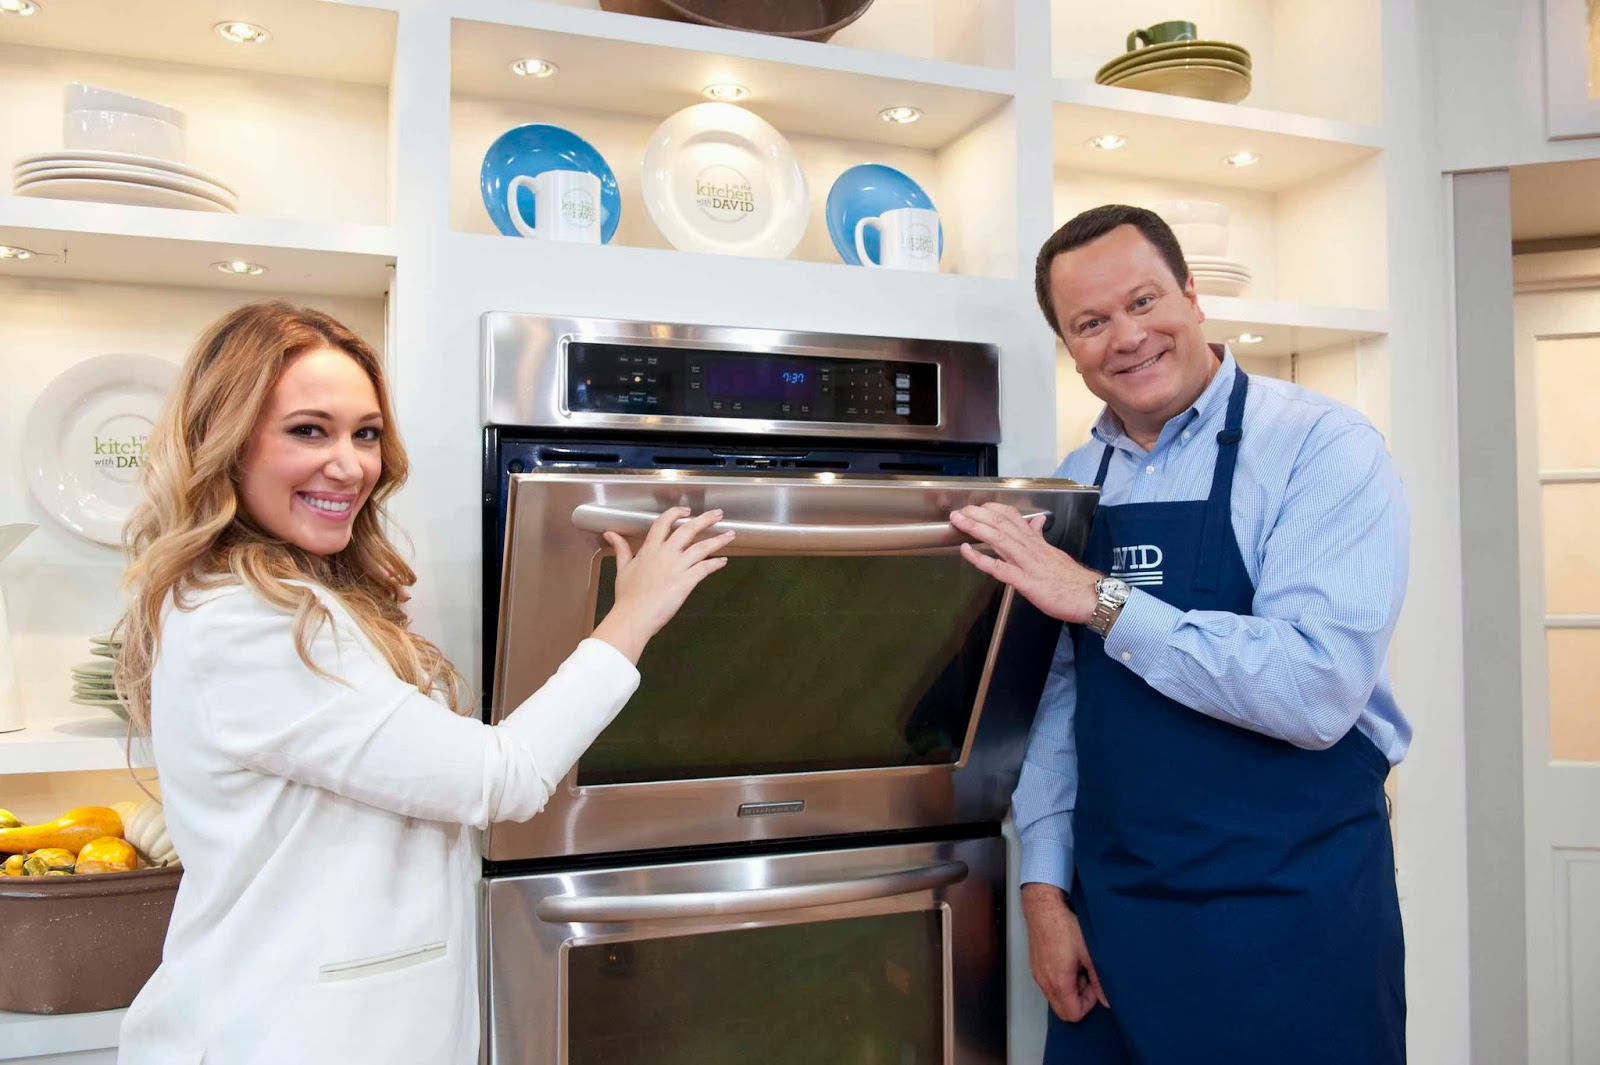 Times Square Gossip: HAYLIE DUFF QVC\'S \'IN THE KITCHEN WITH DAVID\'